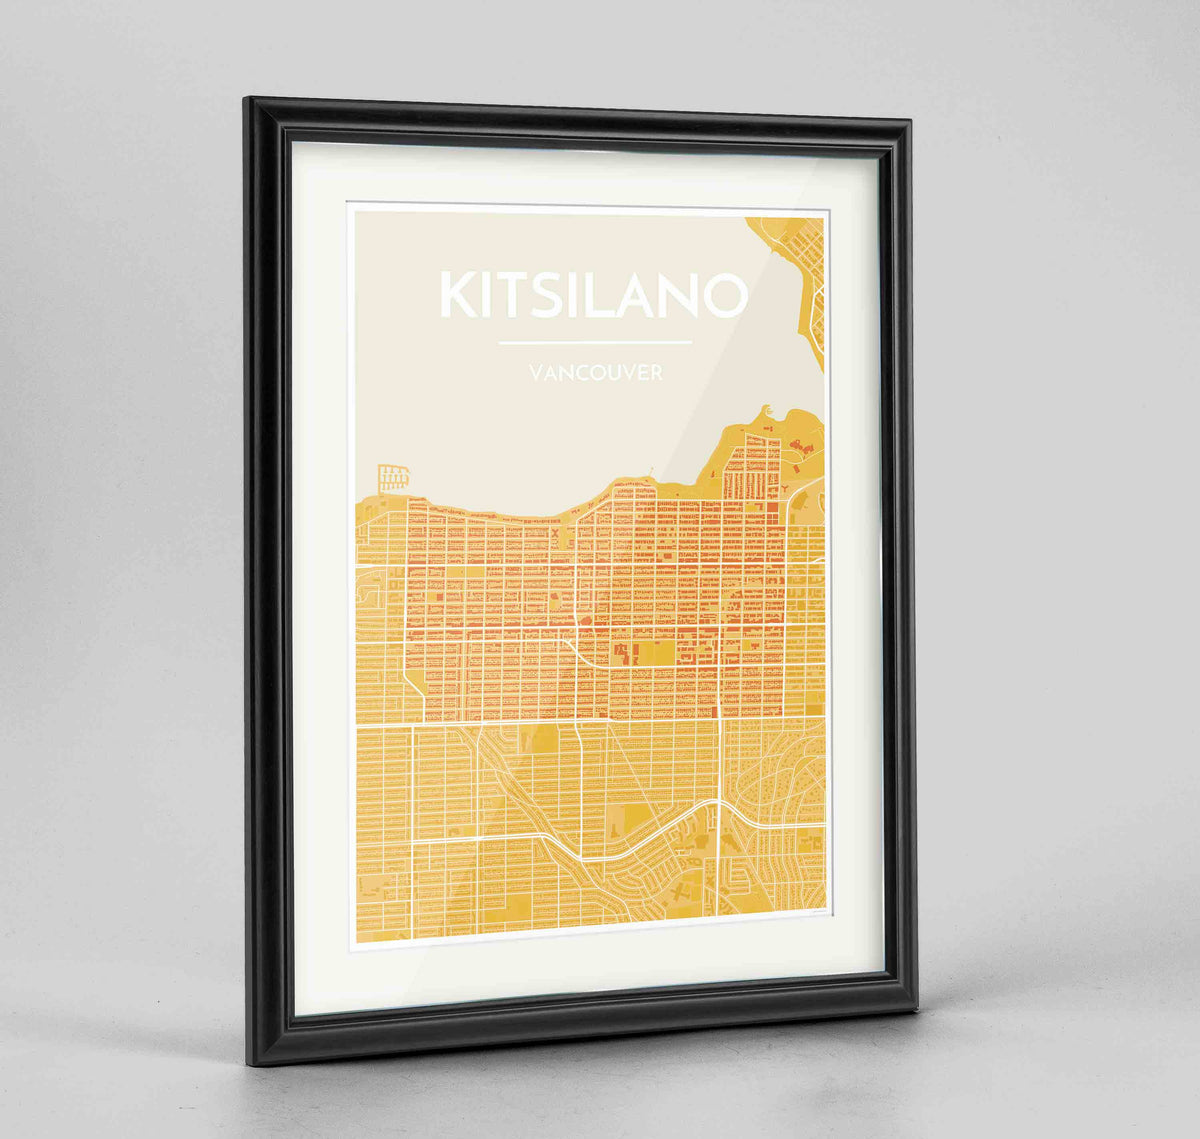 "Framed Kitsilano Vancouver Map Art Print 24x36"" Traditional Black frame Point Two Design Group"